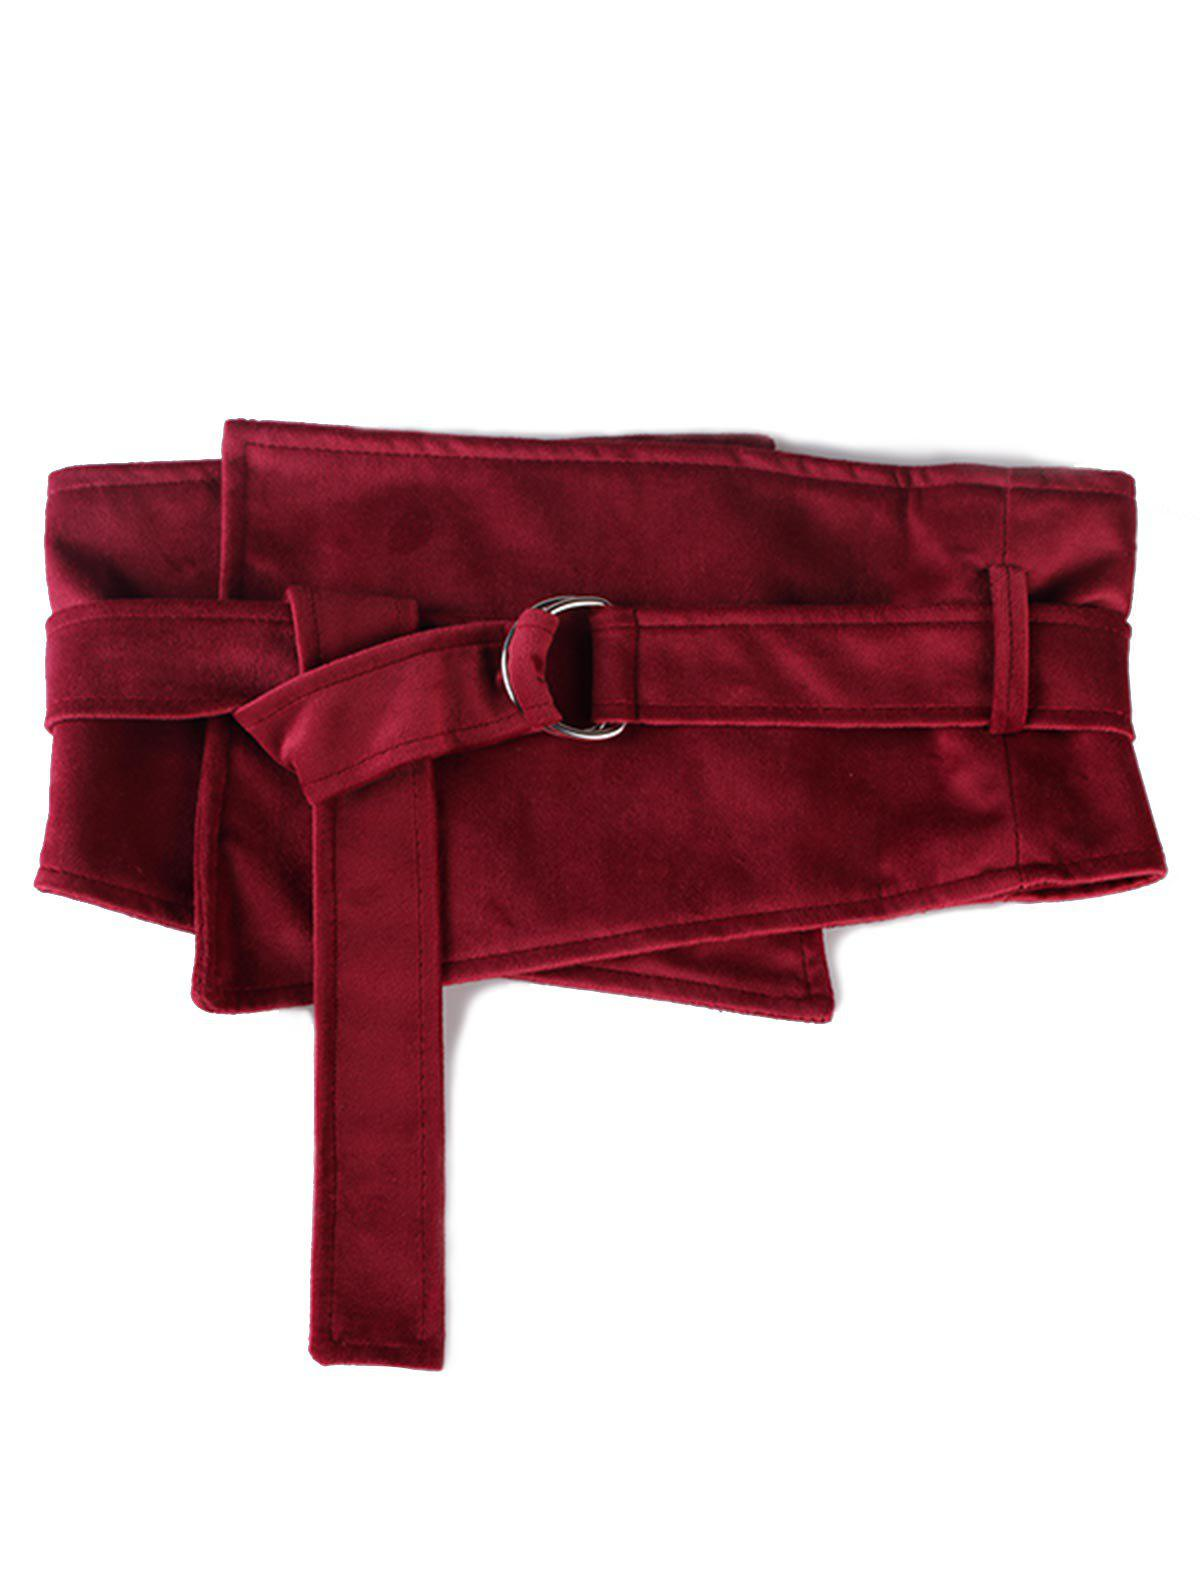 Buy Vintage Metal Buckle Solid Color High Waist Belt